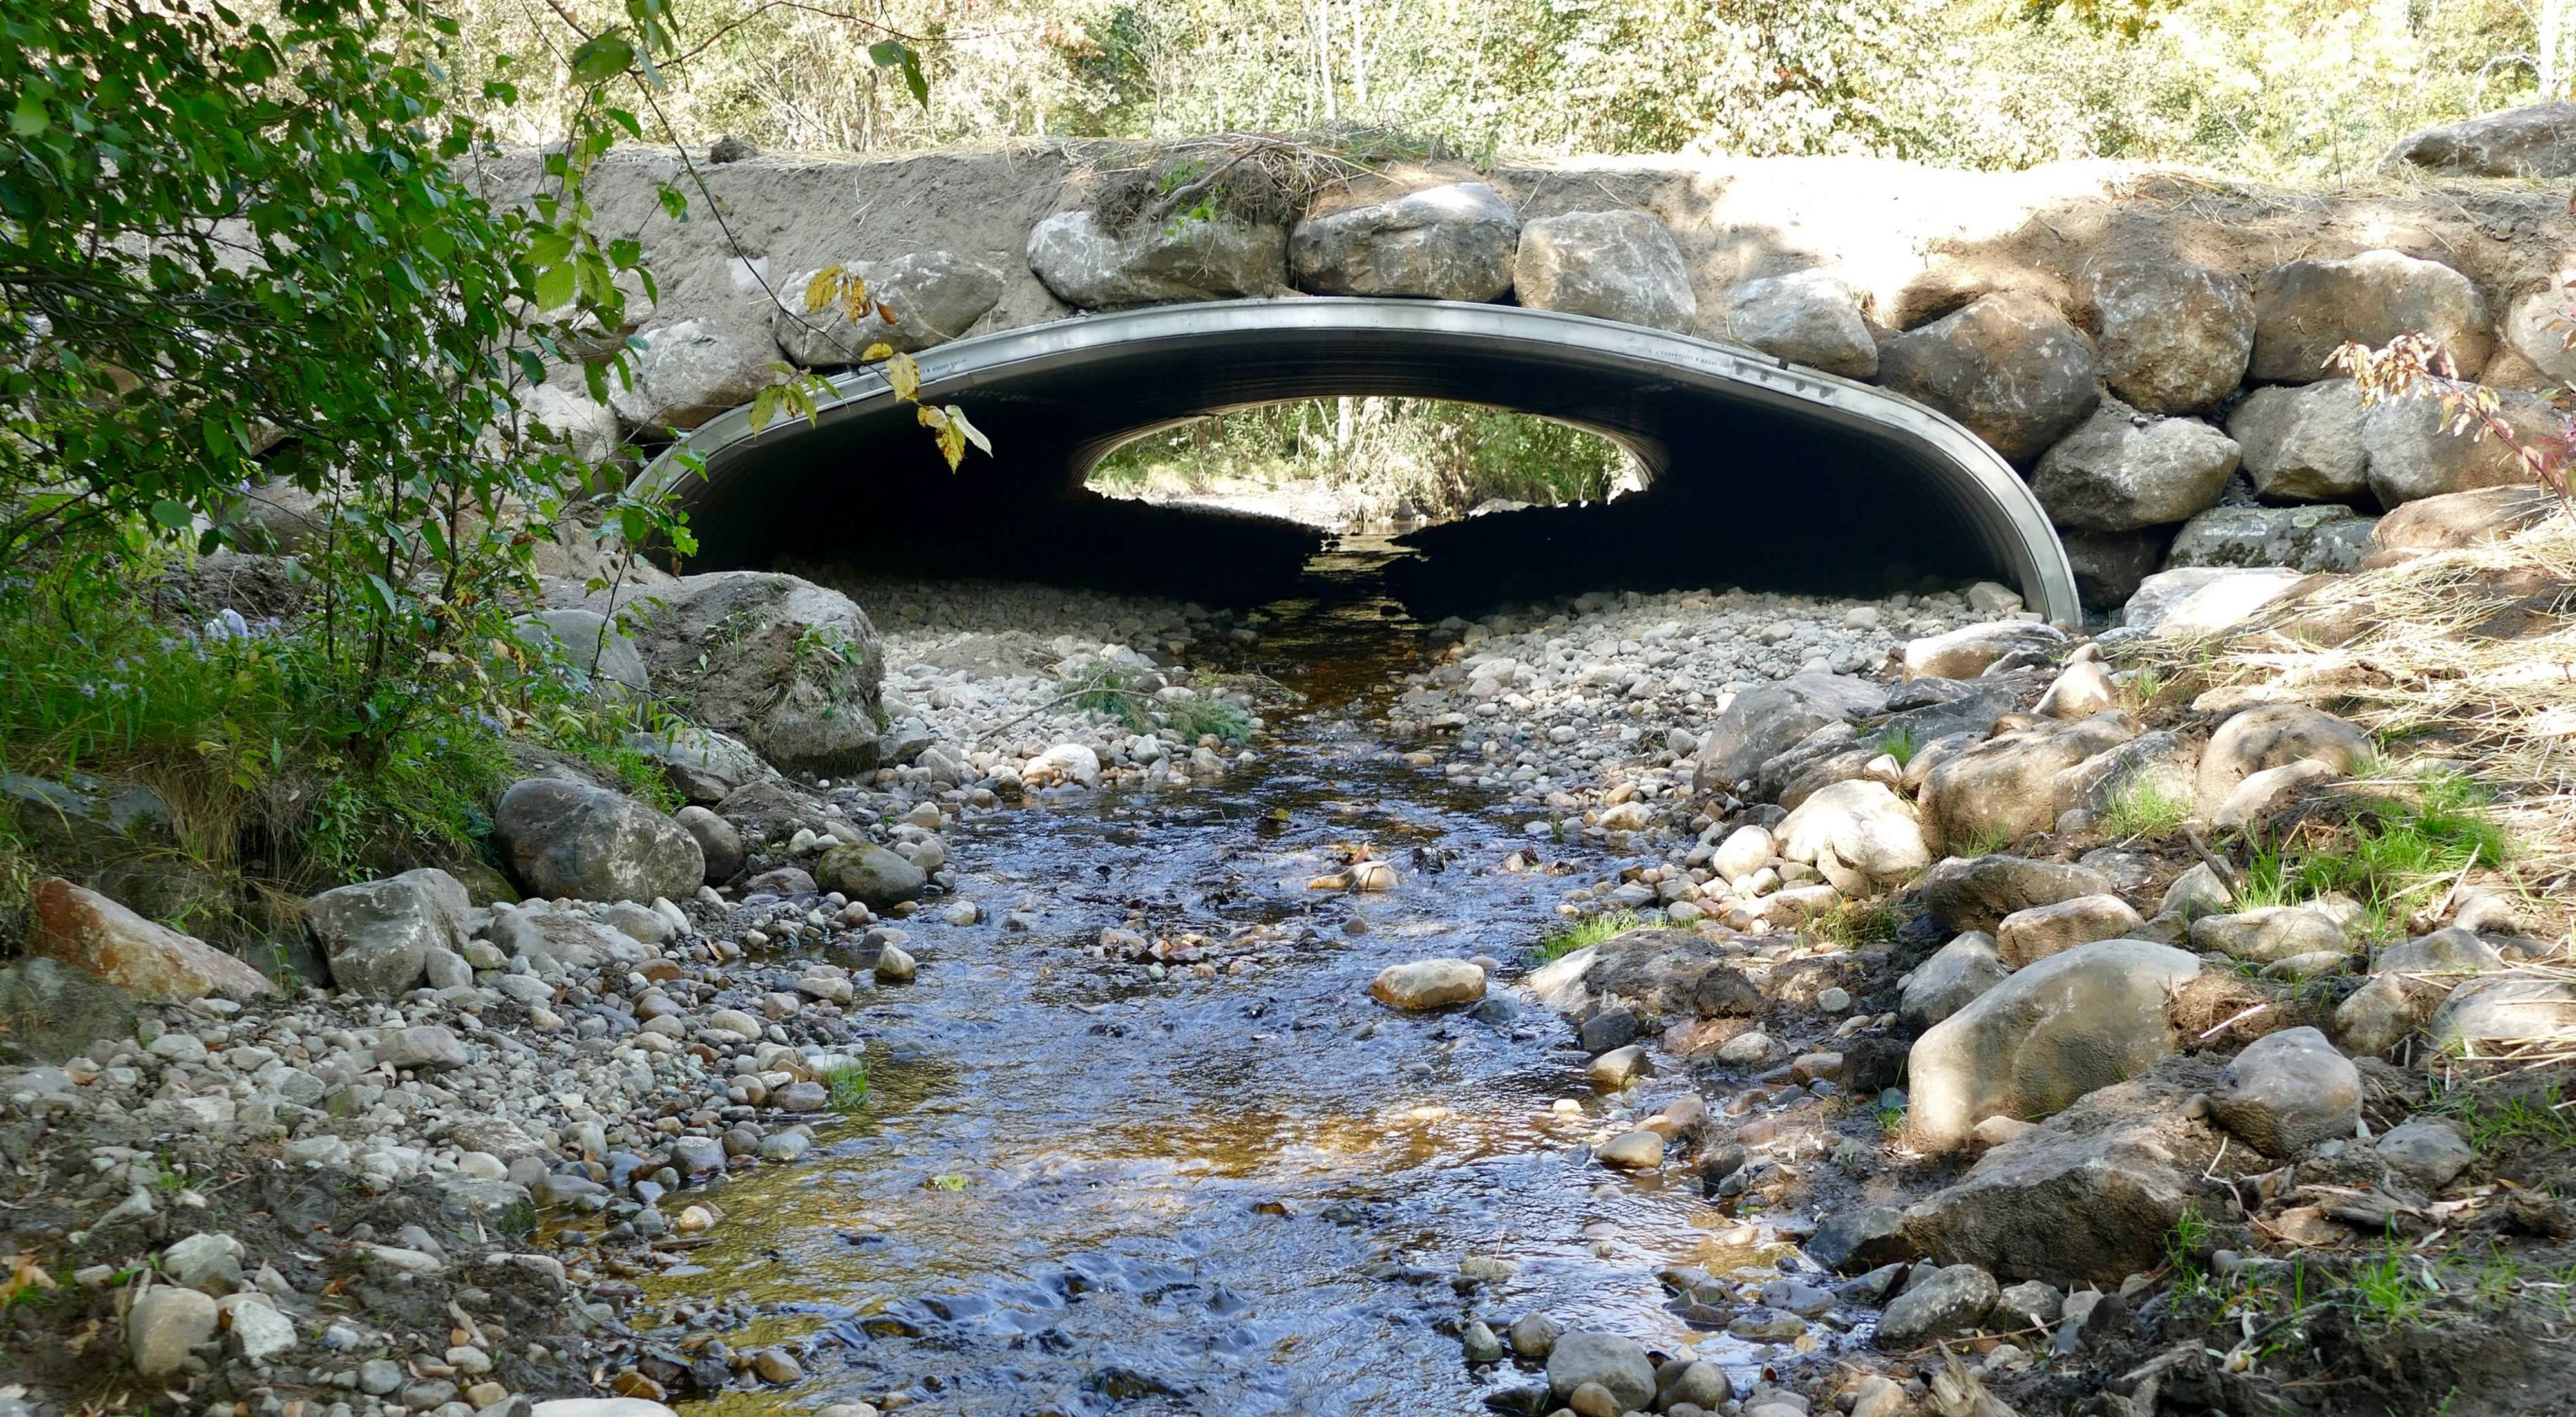 A view from the middle of a stream looking up and directly at a finished culvert.